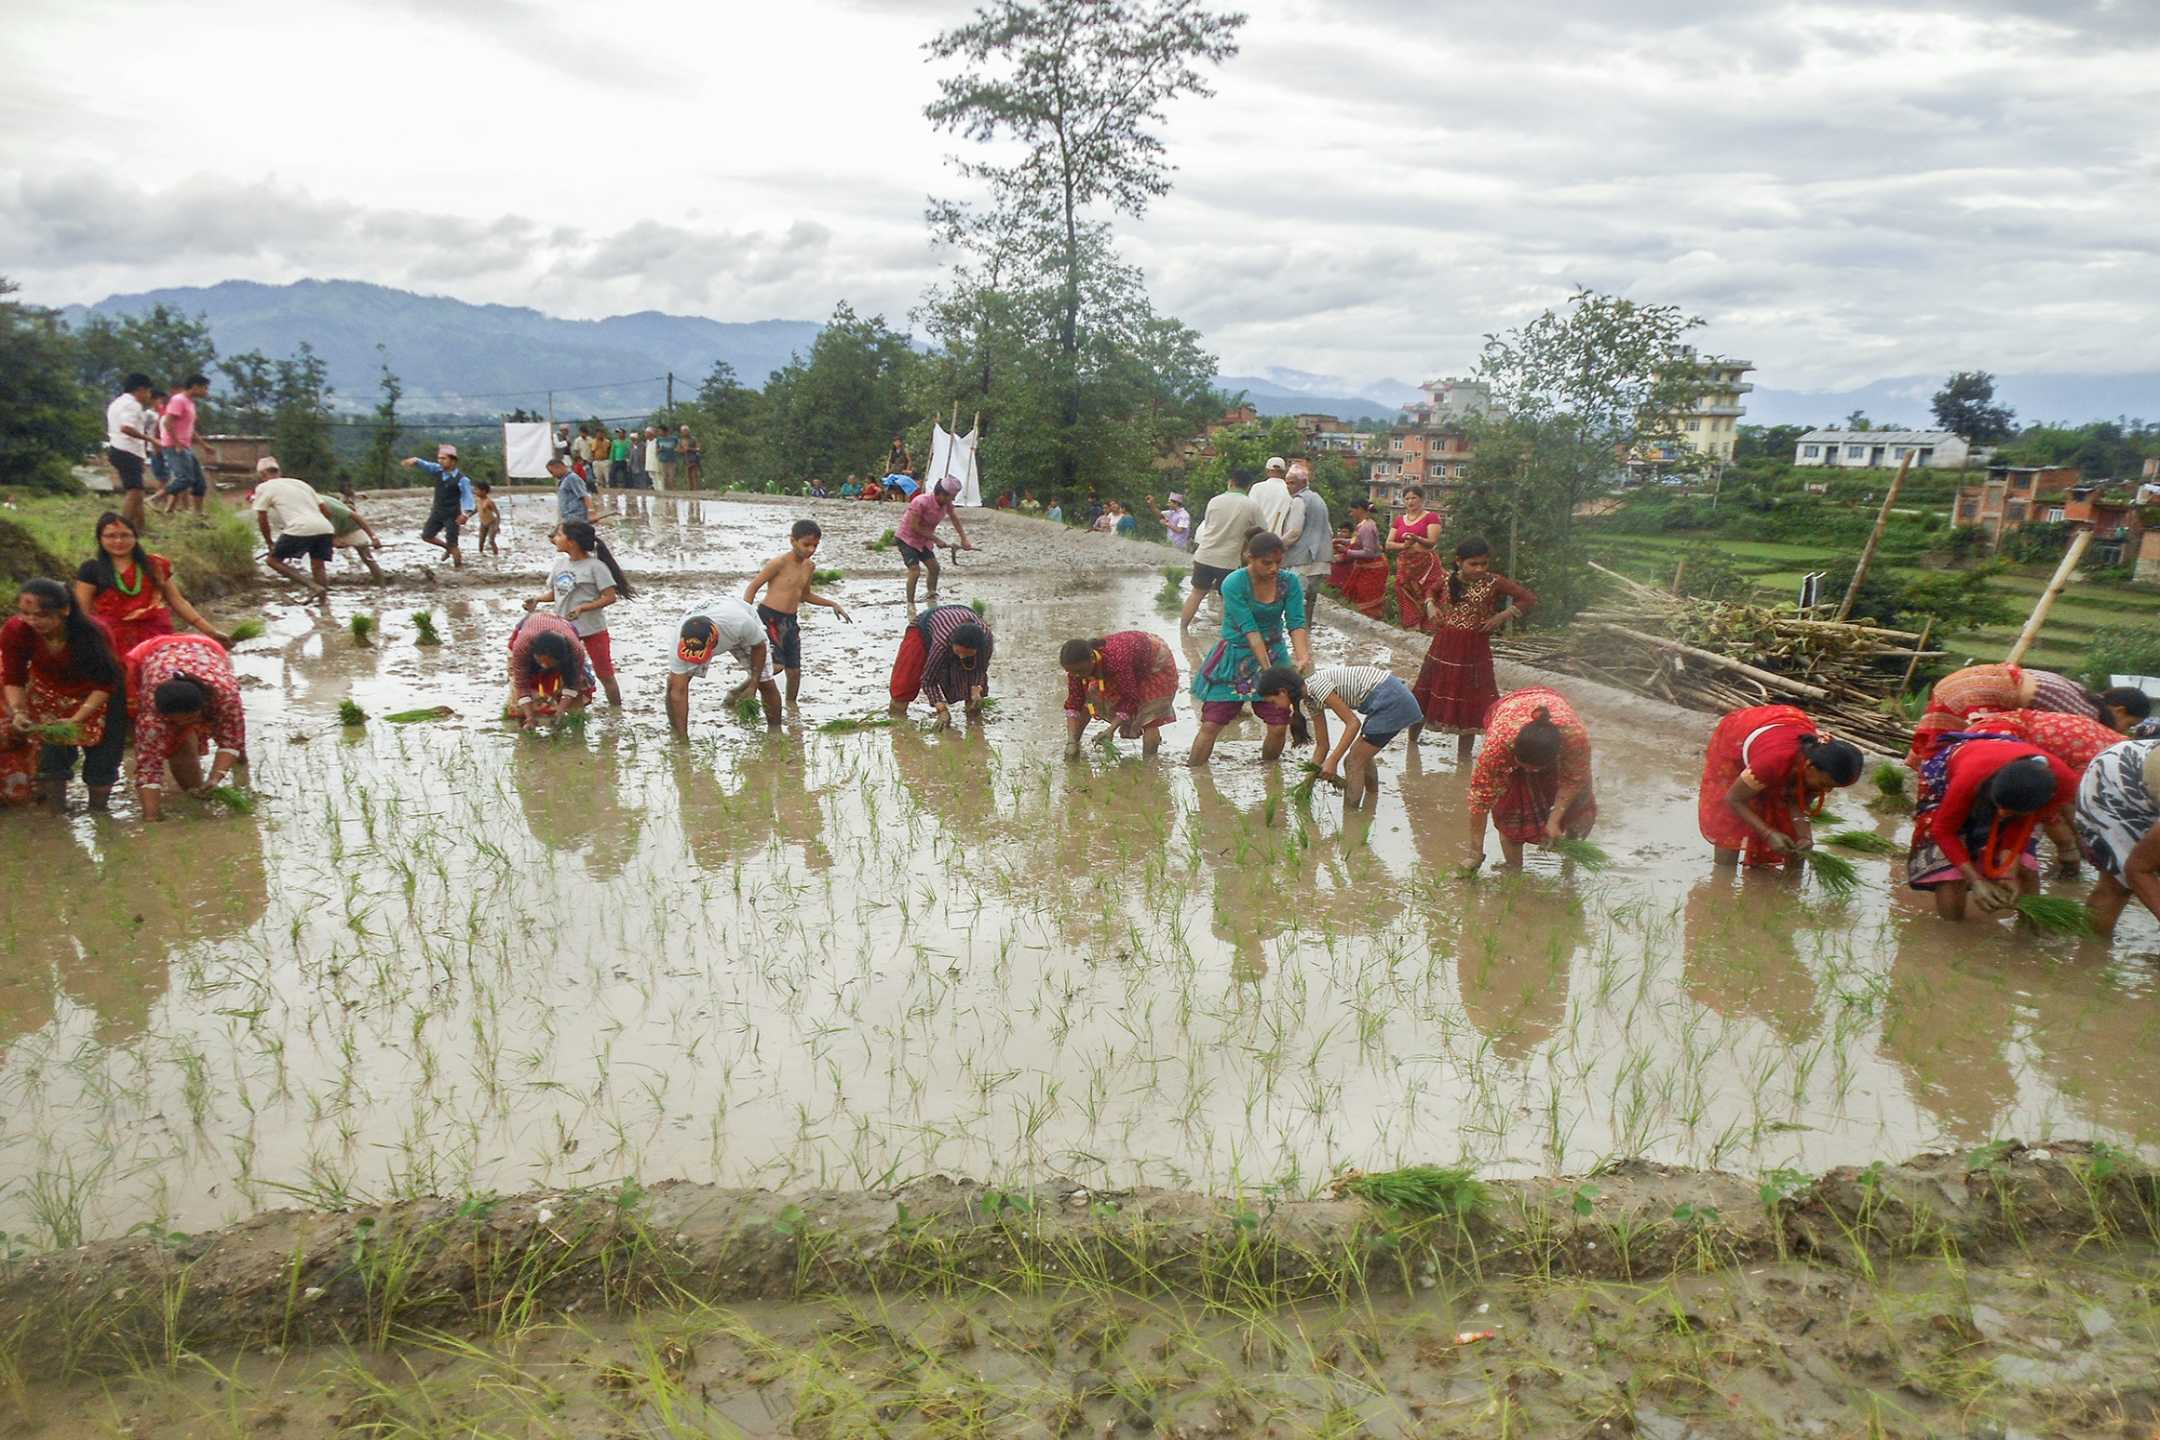 Villagers planting paddy in the fields